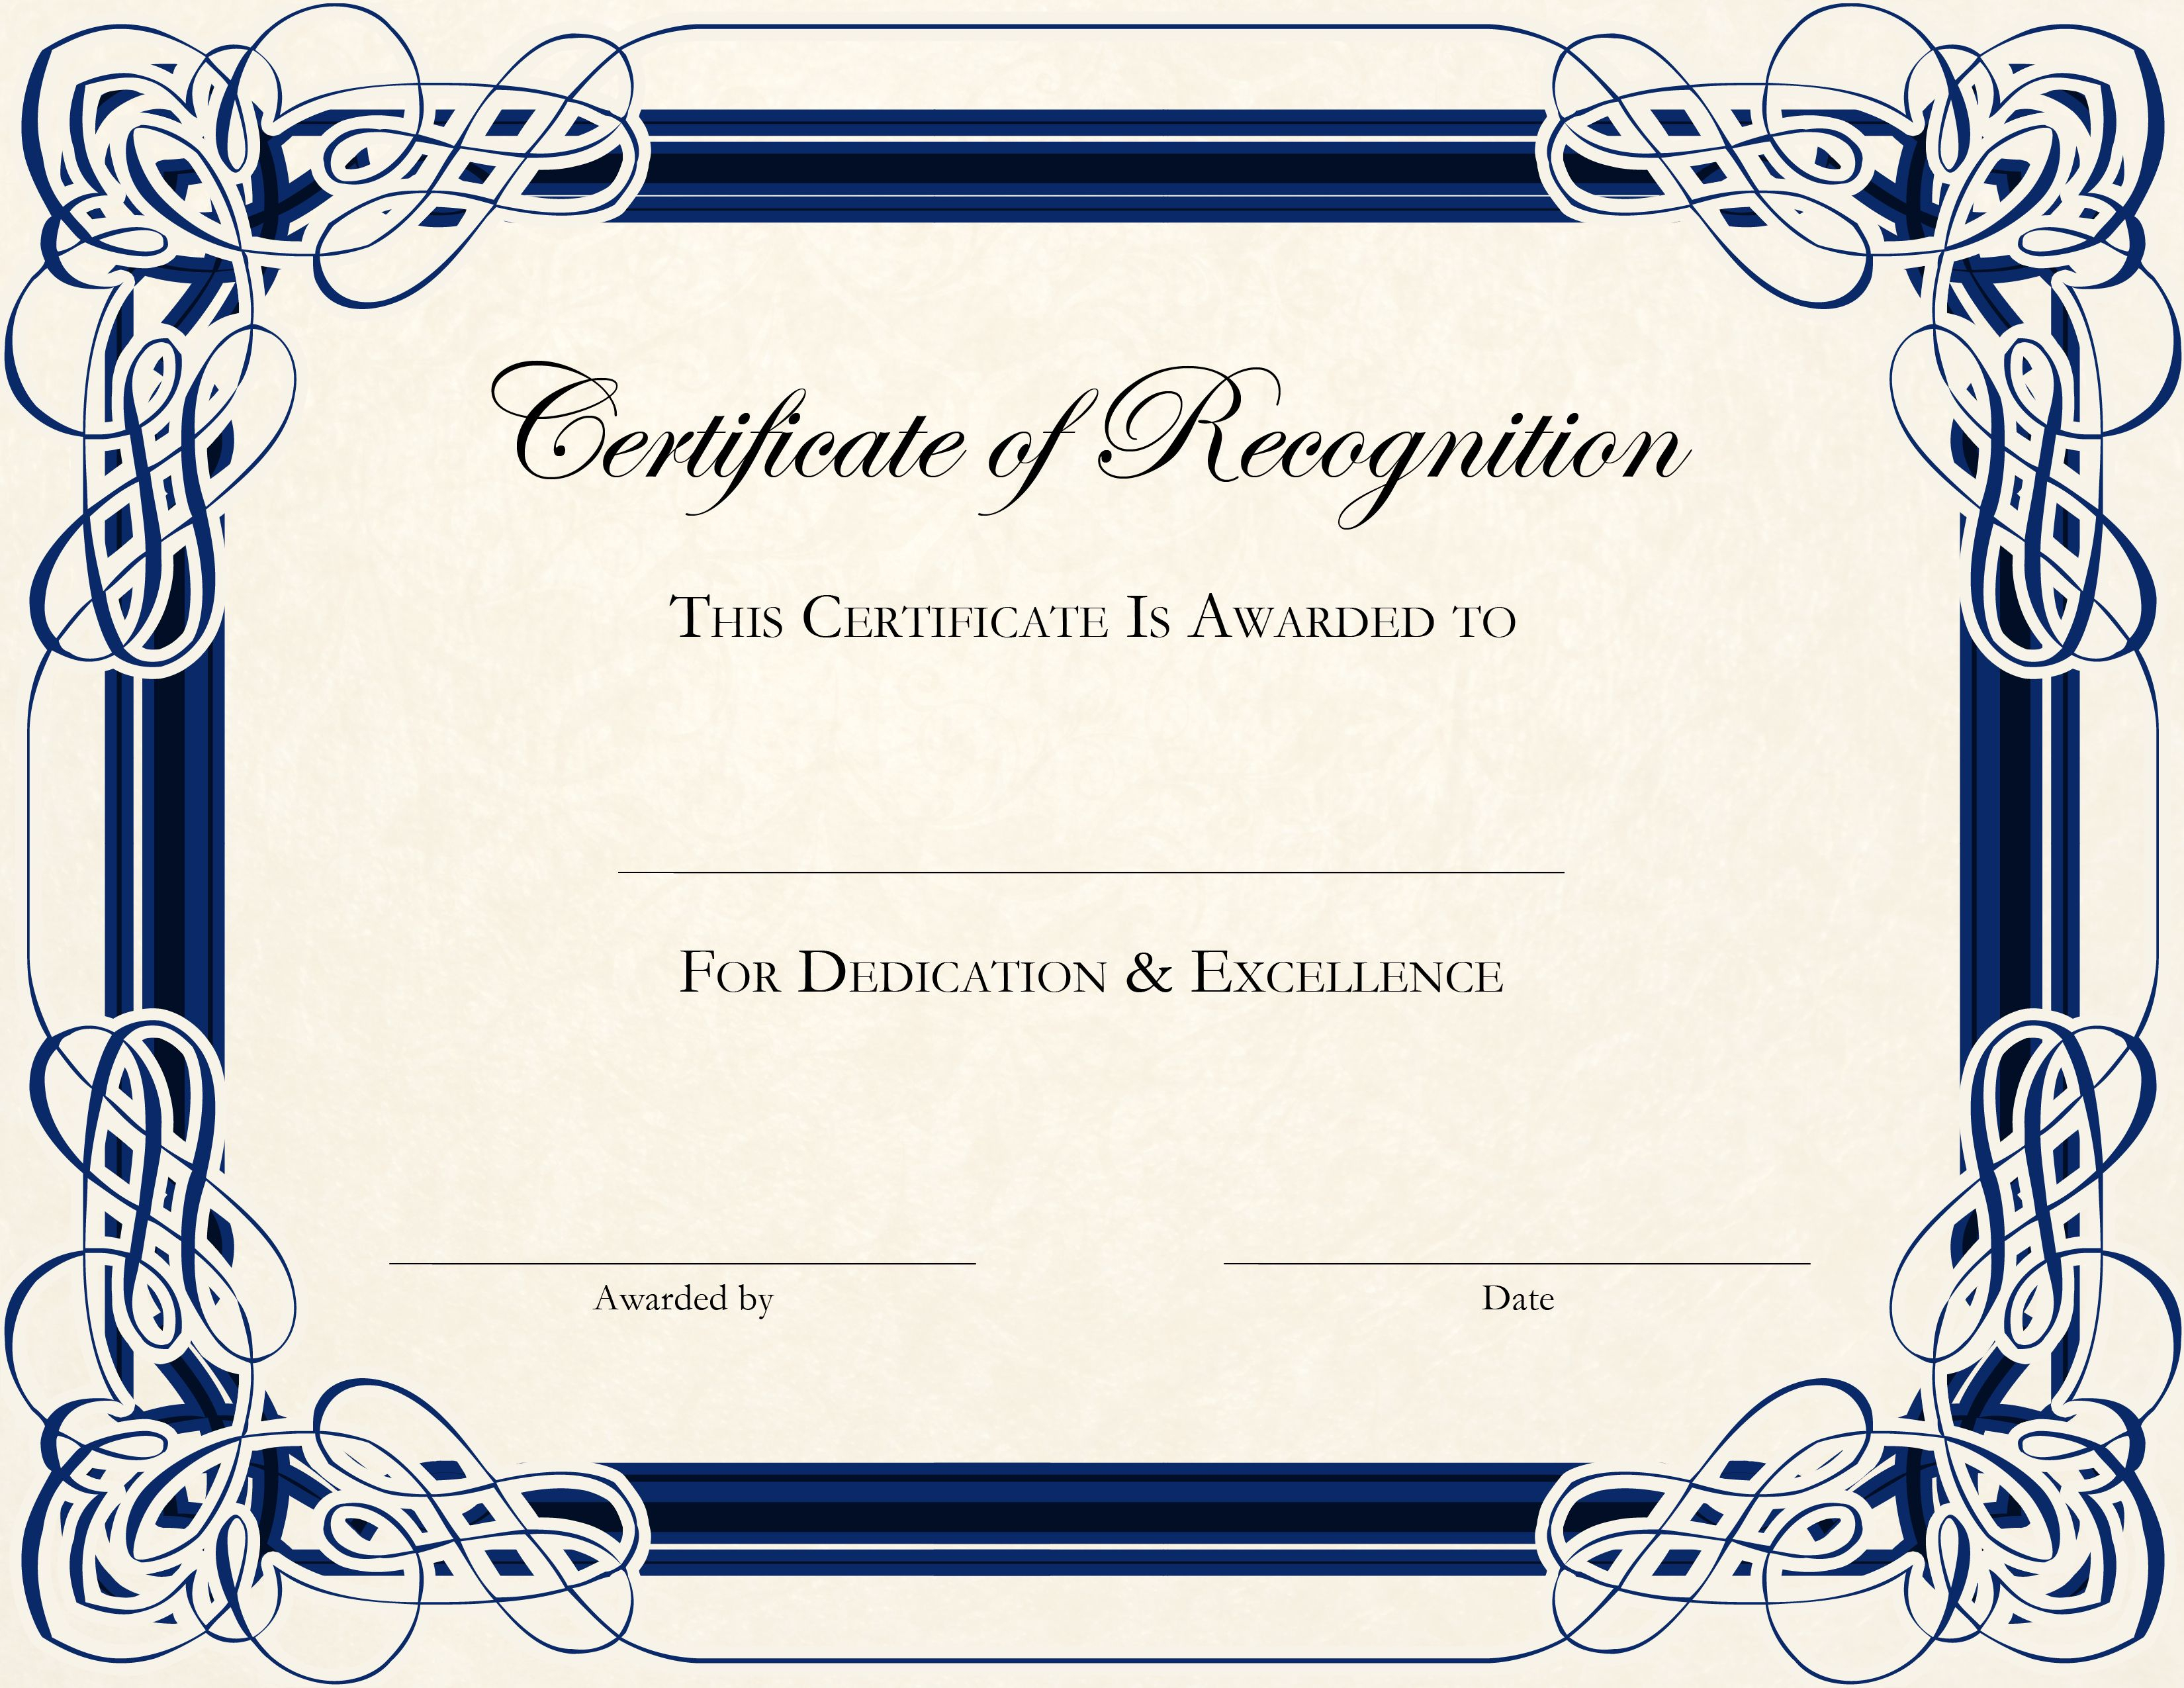 Certificate Template Designs Recognition Docs | Blankets Regarding Template For Certificate Of Appreciation In Microsoft Word